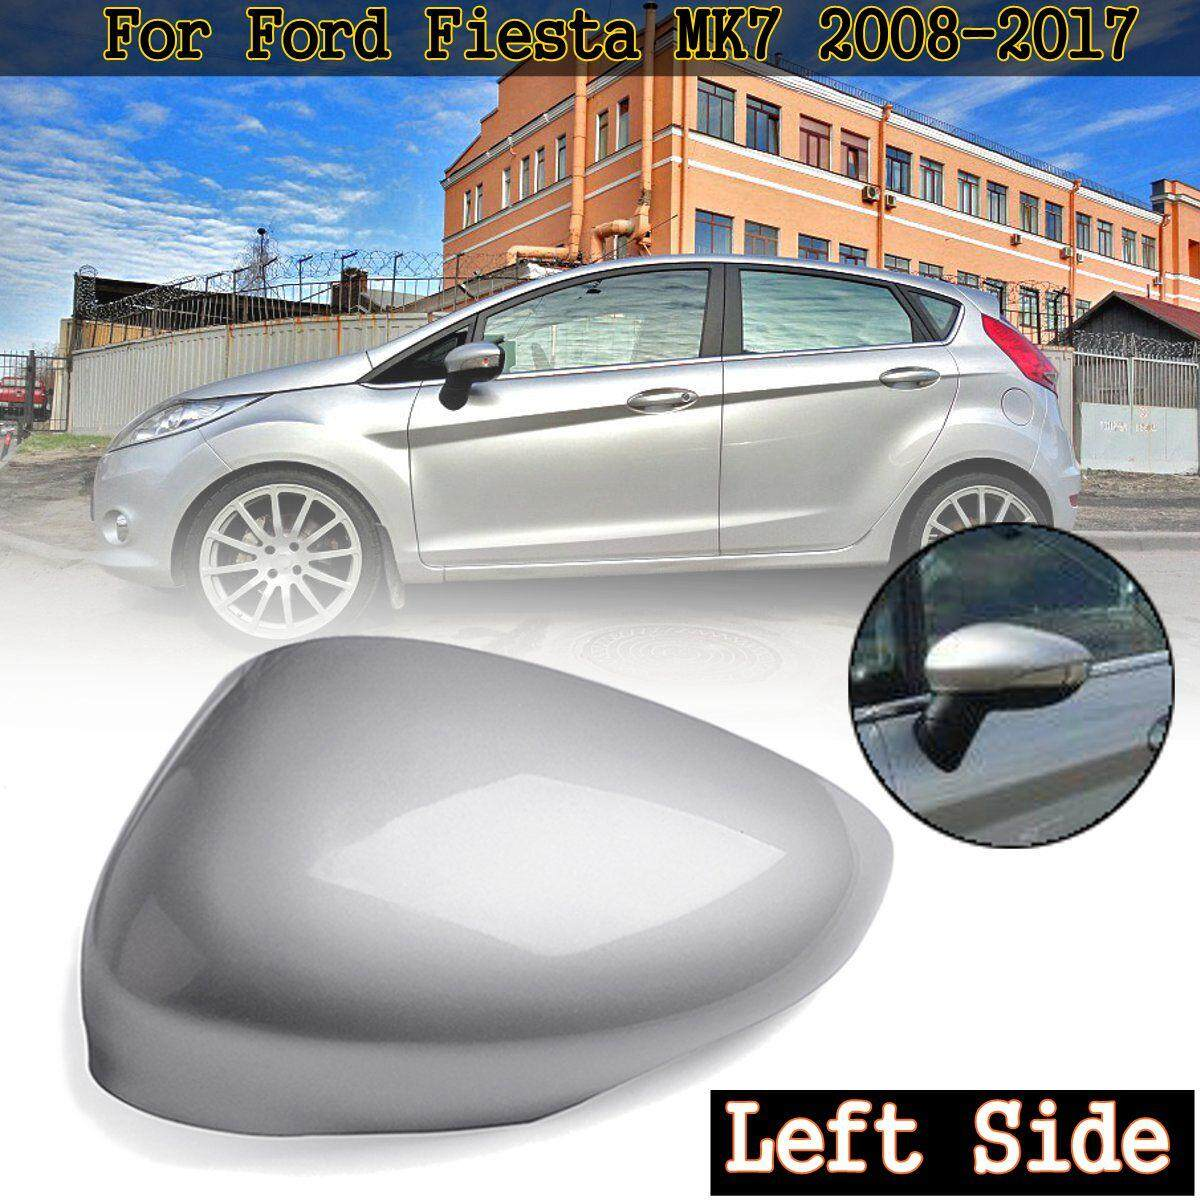 Right Side WING//DOOR MIRROR INDICATOR FOR FORD FIESTA  FOR 2008 TO 2017